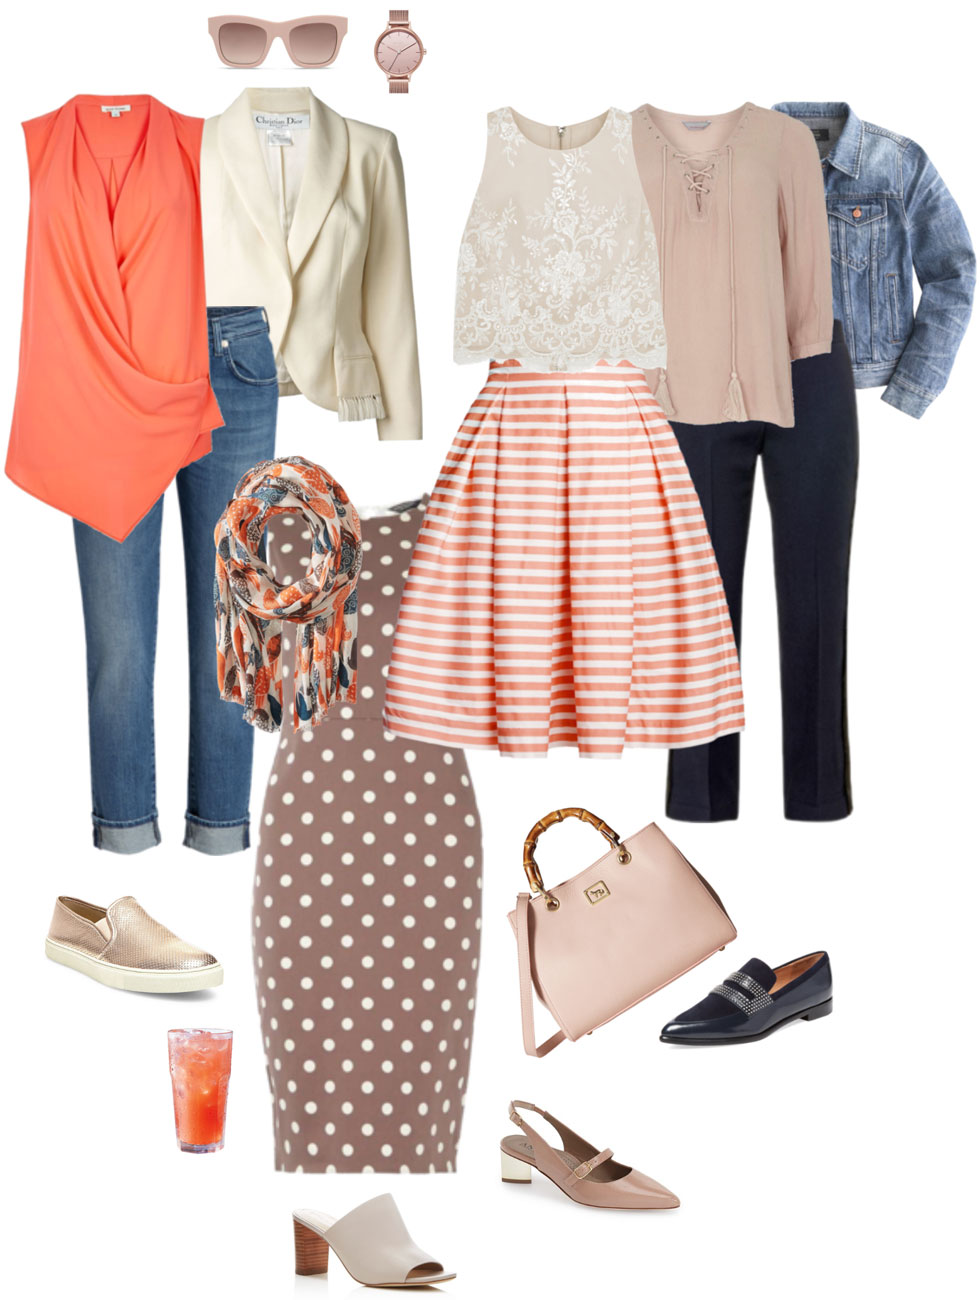 Ensemble: Coral, Blush, Cream, Taupe & Ink Blue